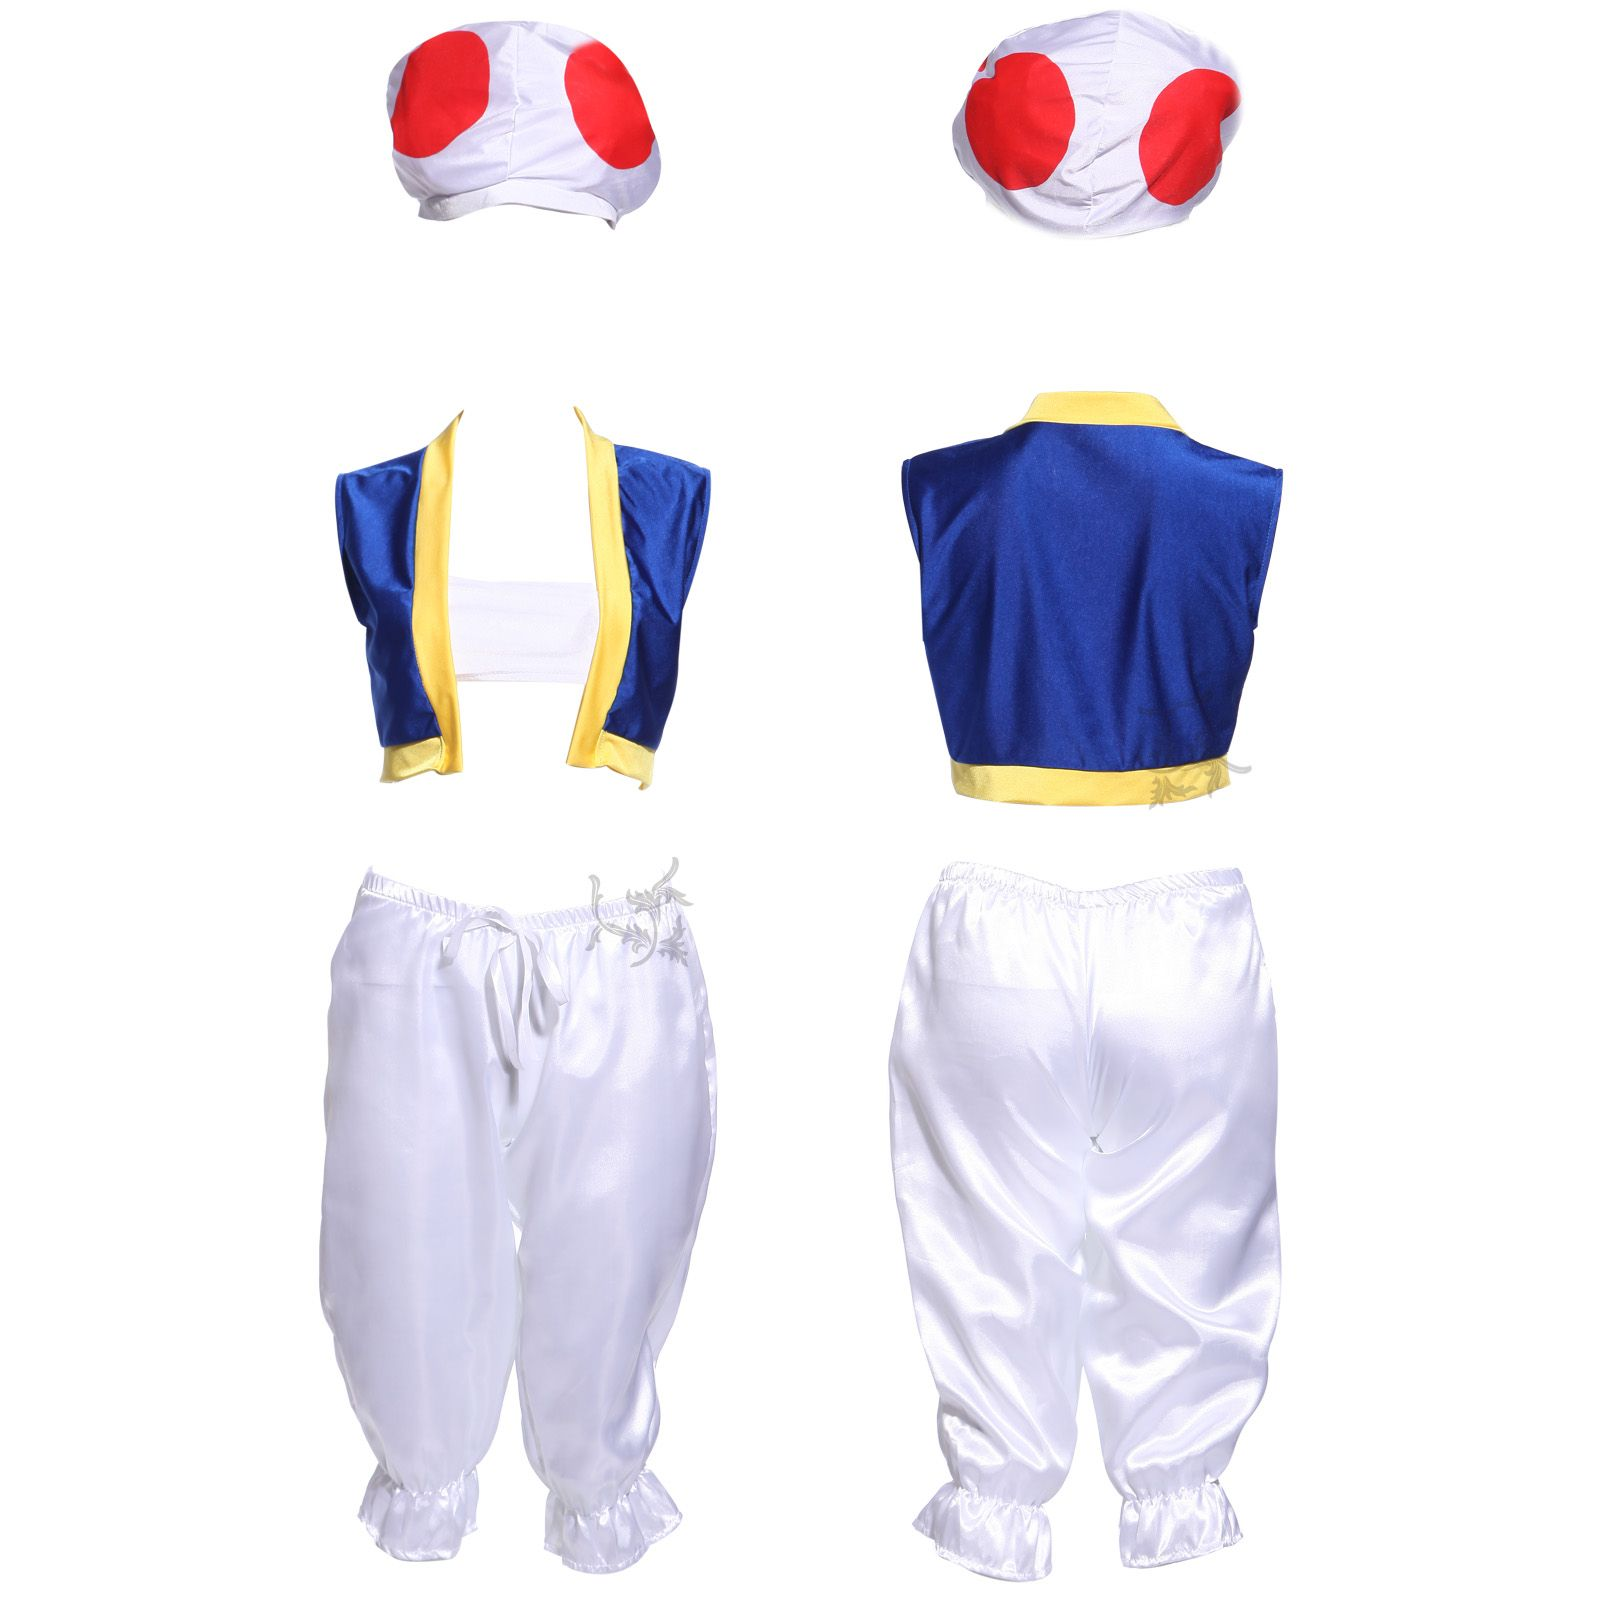 diy womens toad costume - Google Search  sc 1 st  Pinterest & Hi guys in todayu0027s video weu0027ll be making a Toadu0027s costume . Mario ...